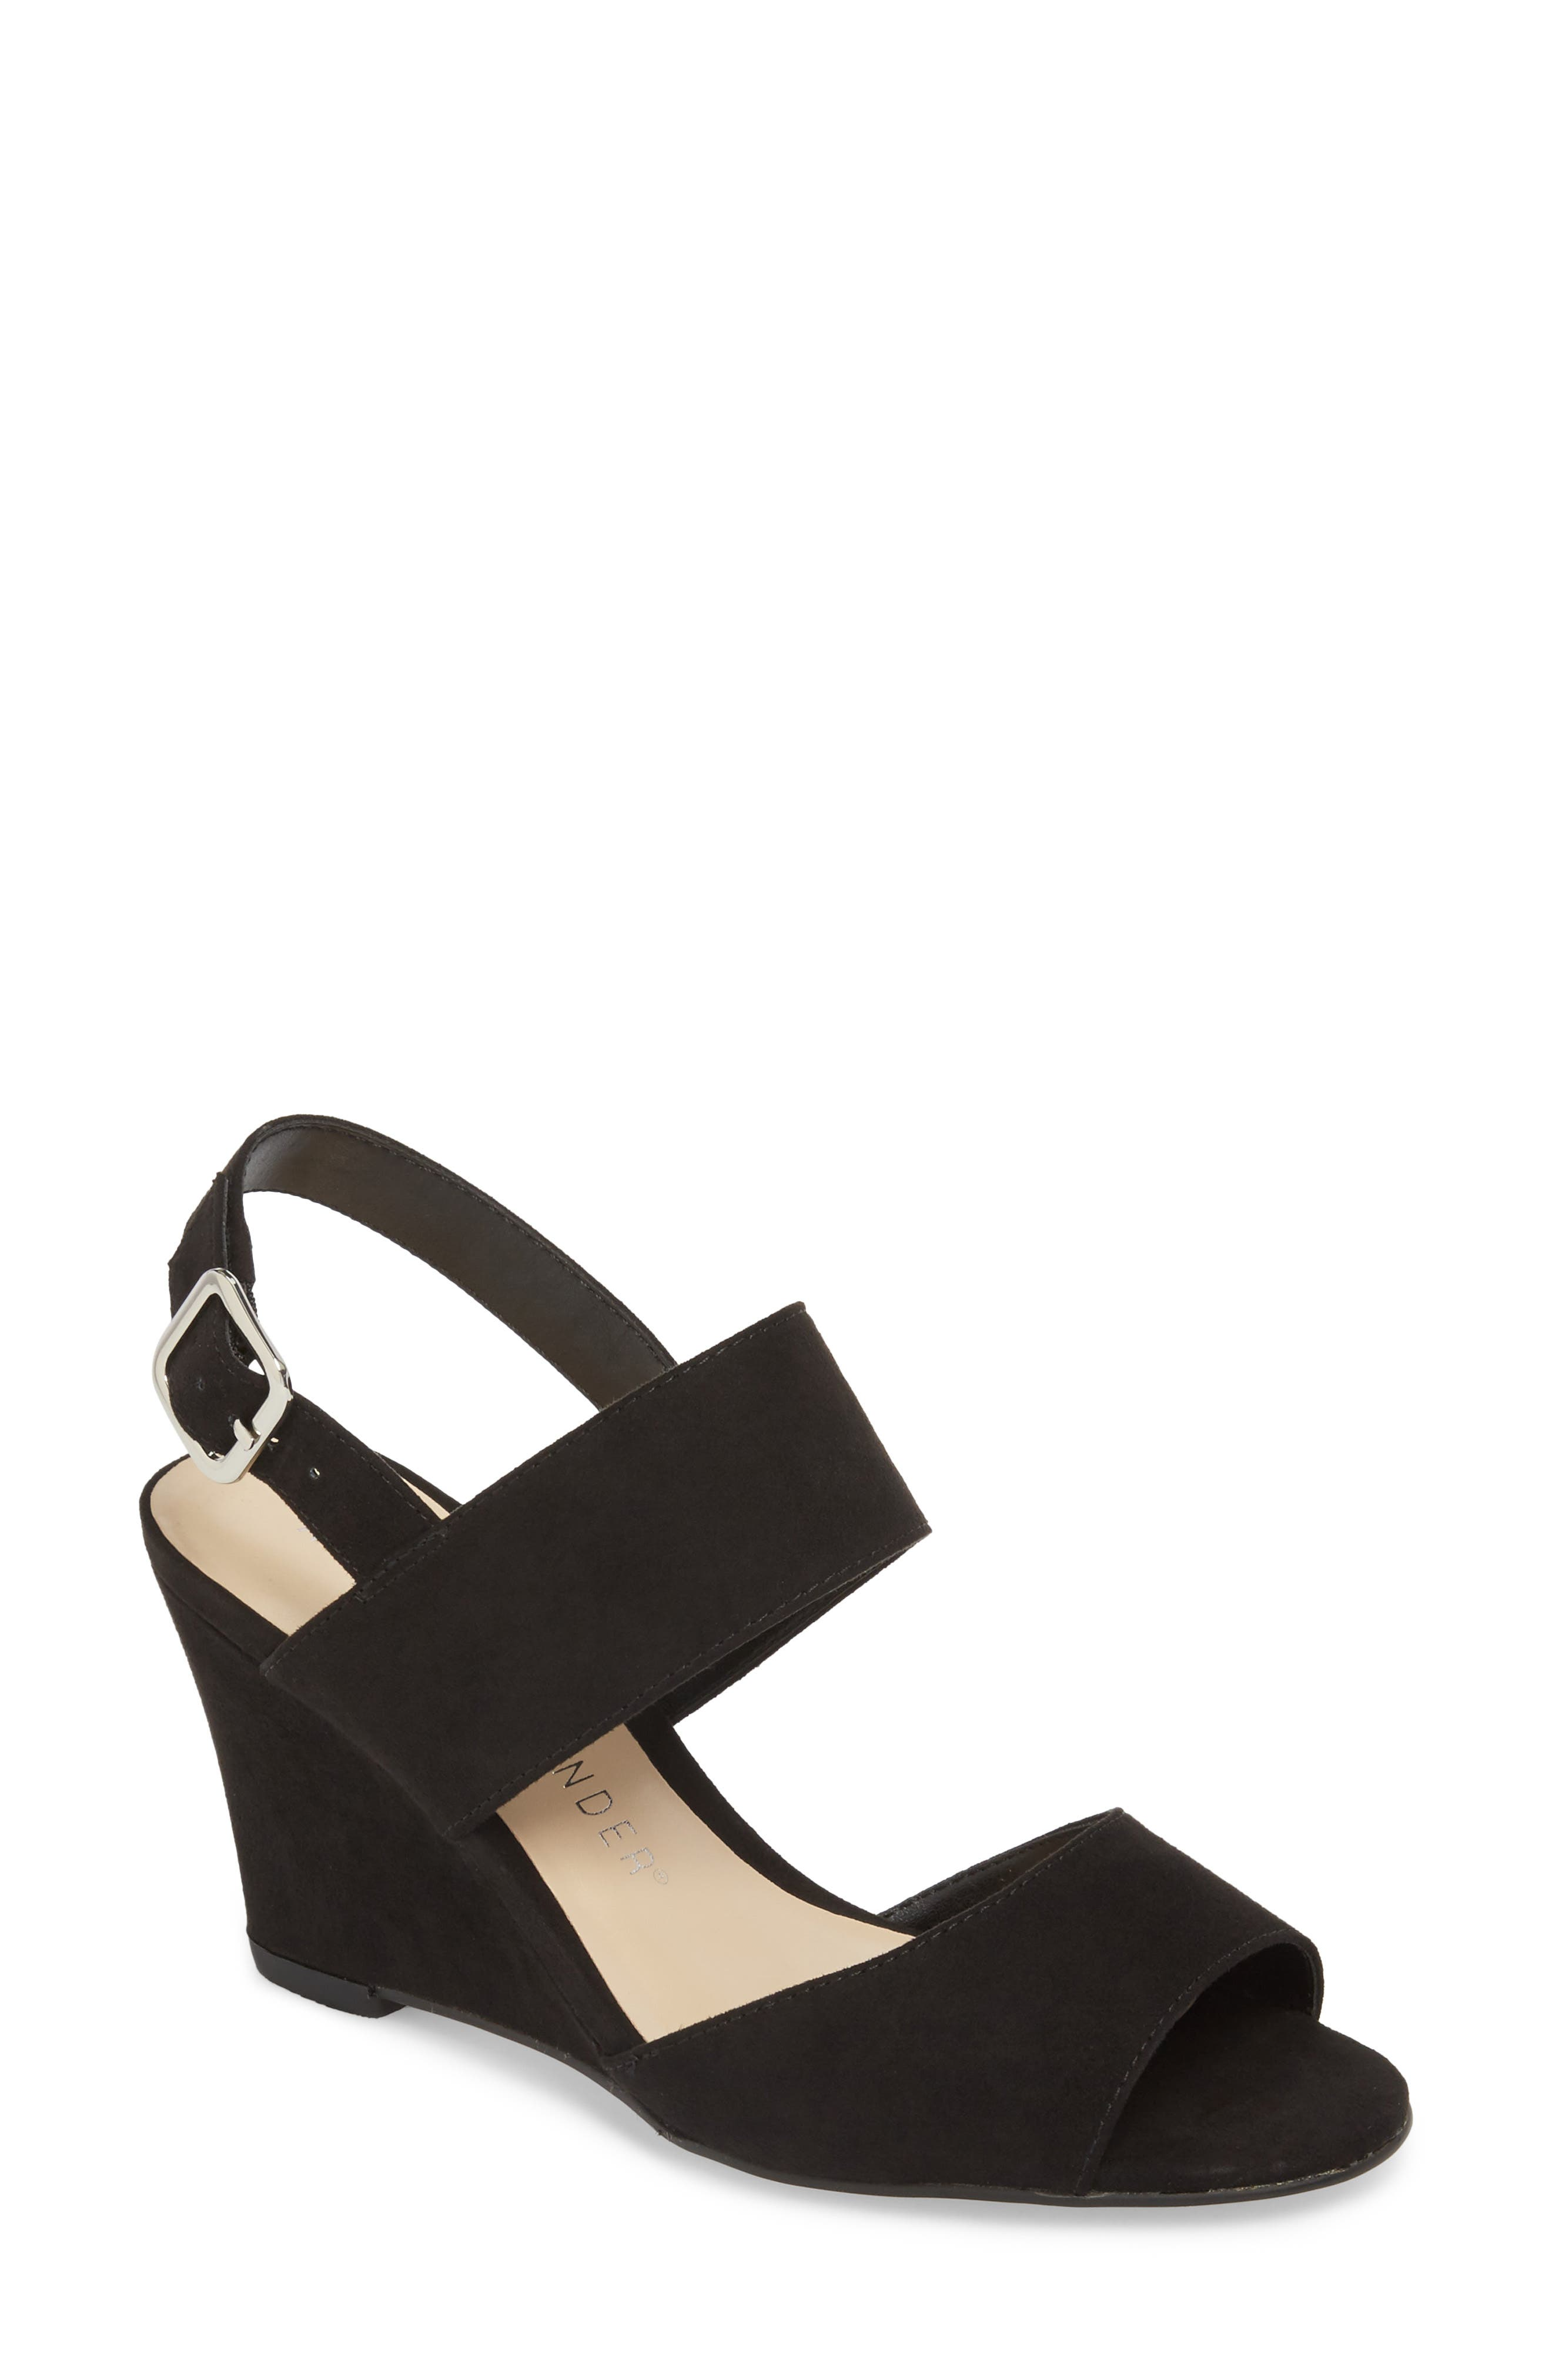 Slayte Wedge Sandal,                         Main,                         color, BLACK FAUX SUEDE